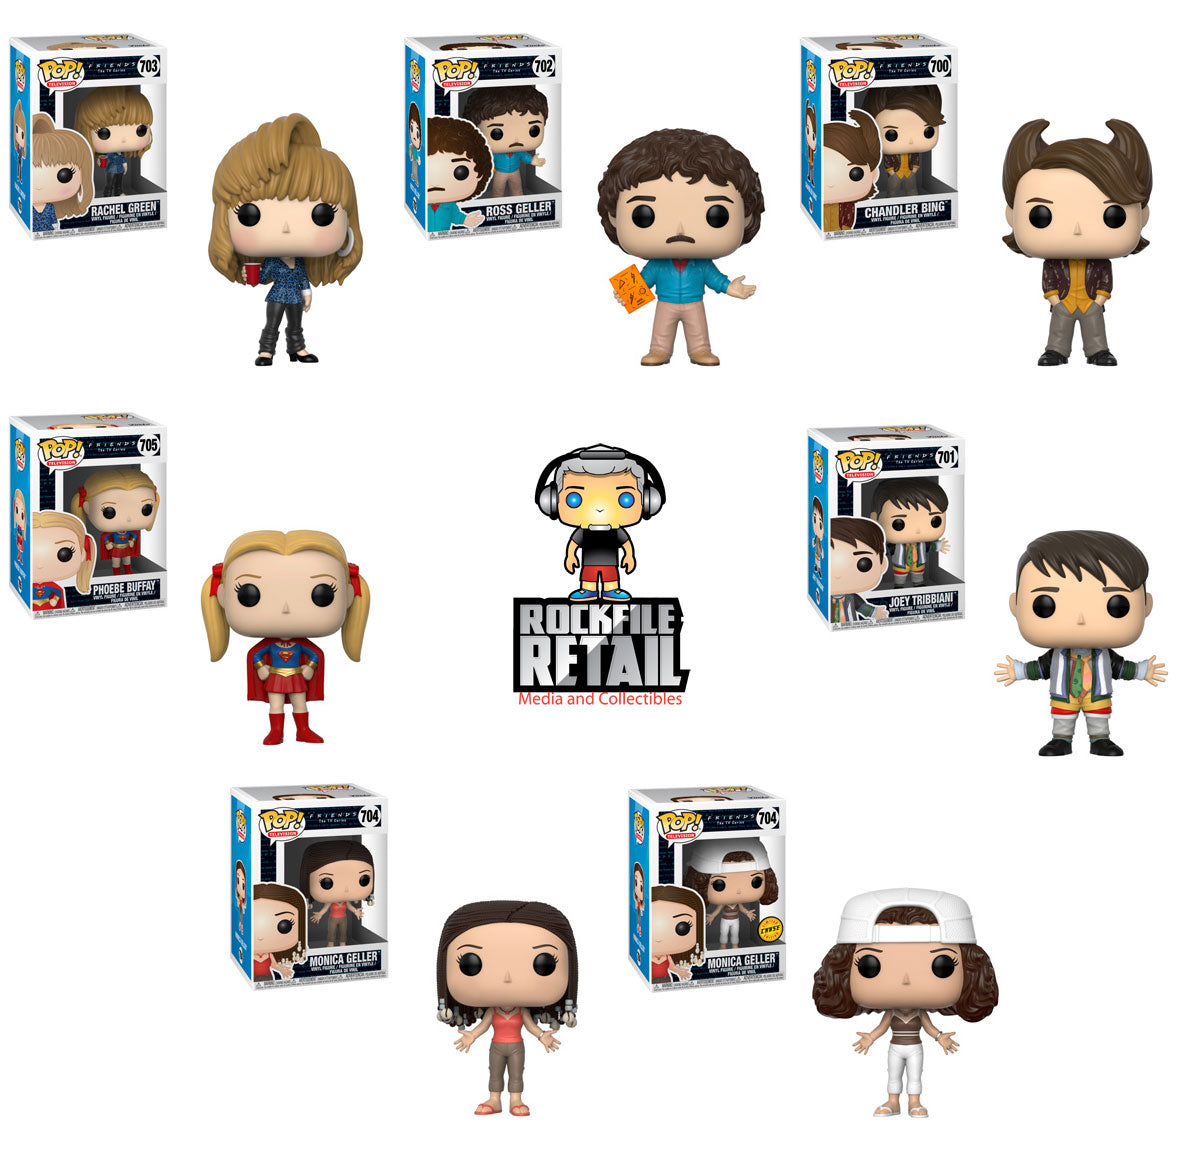 POP! Television Friends Series 2 Chase 7-Pack (PRE-ORDER)